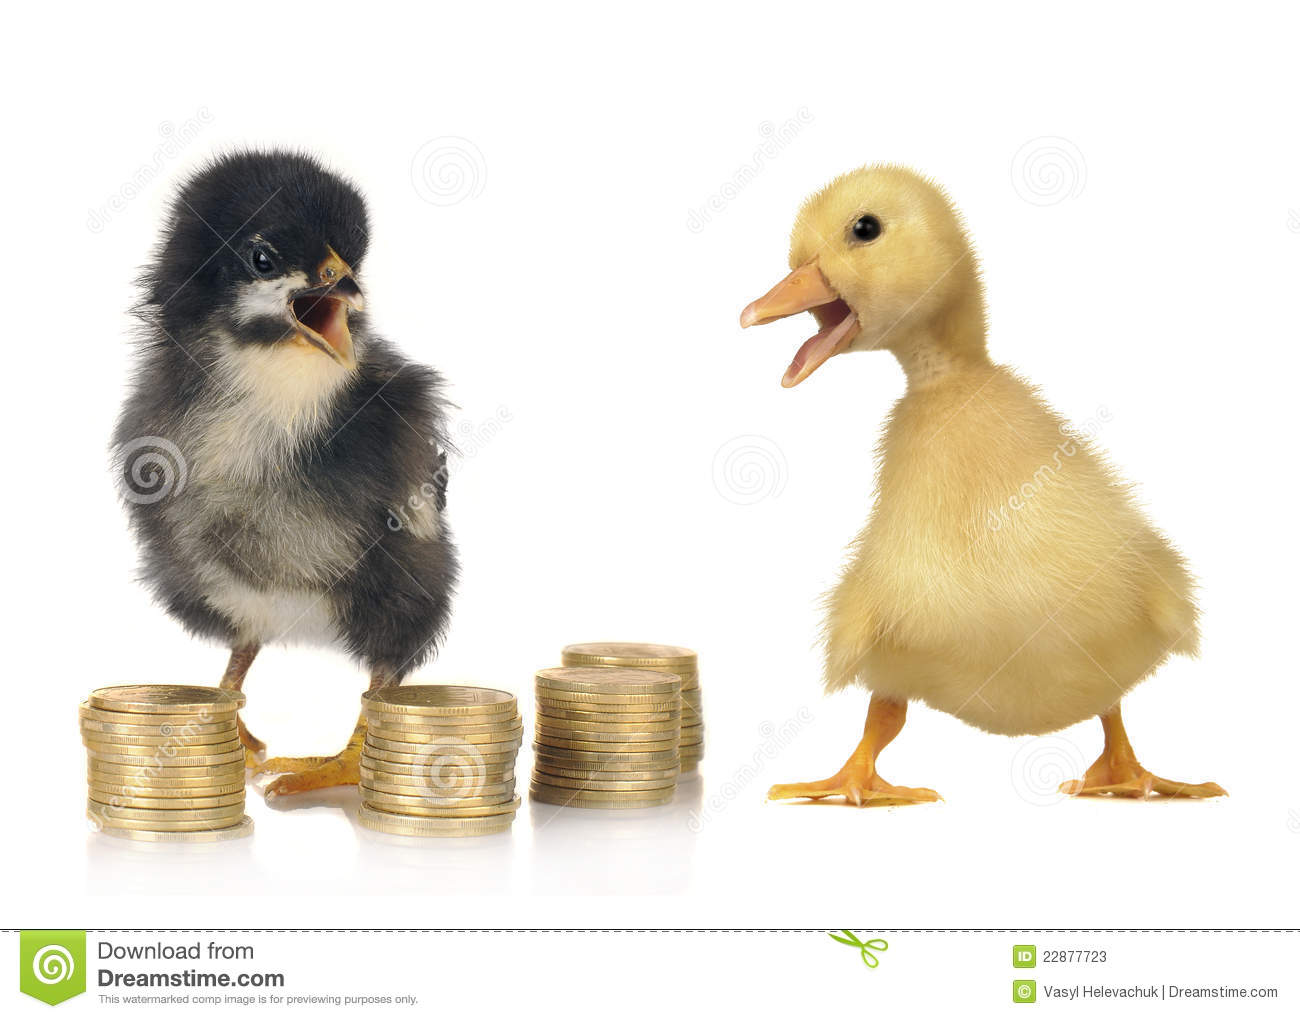 chick and duck stock photos image 22877723 kids running clip art black white Running Clip Art Black and White